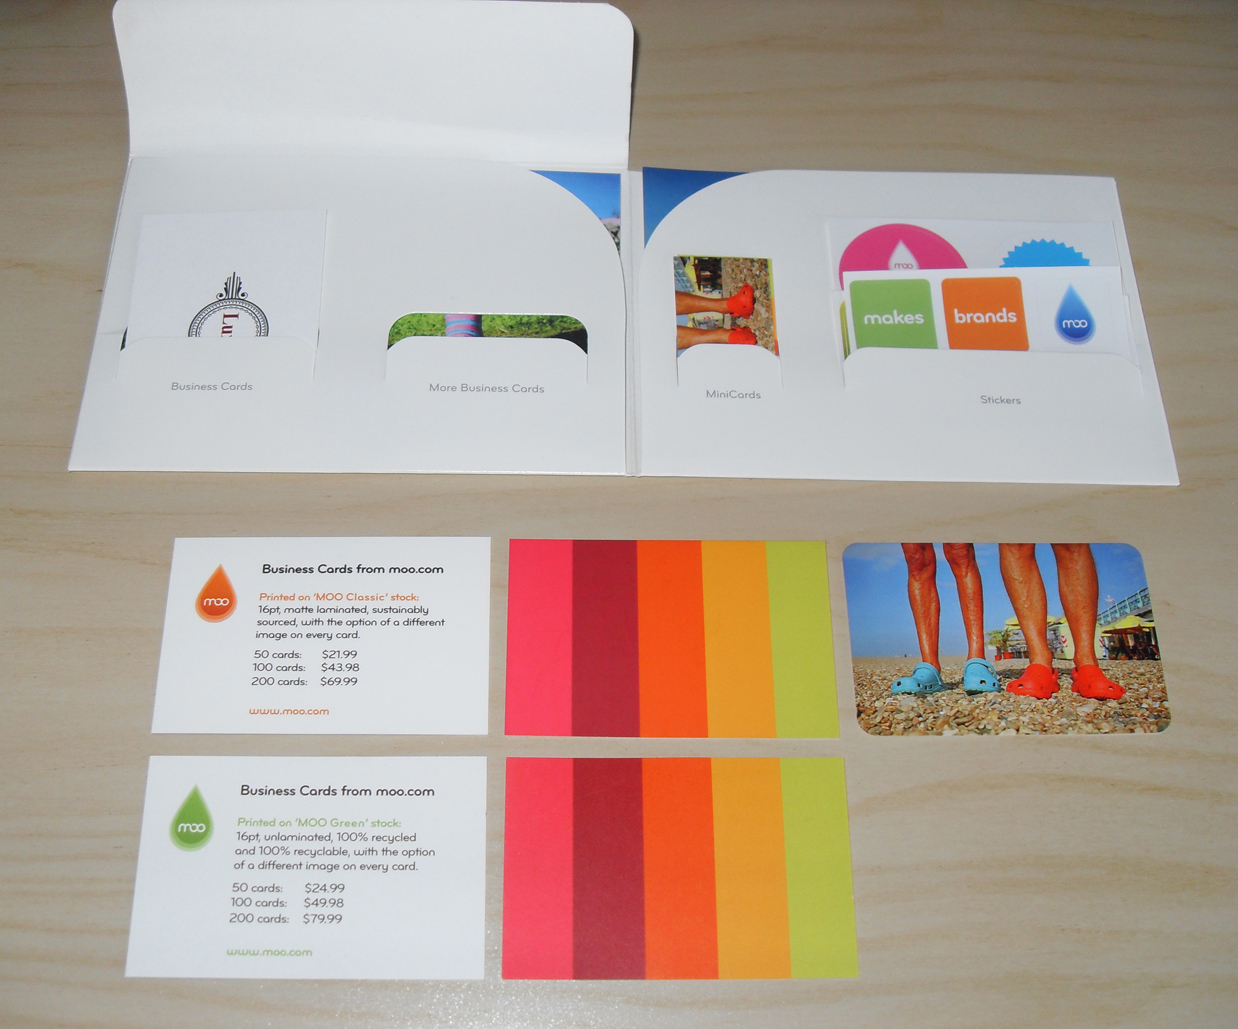 Moo Business Cards Expensive Image collections - Card Design And ...